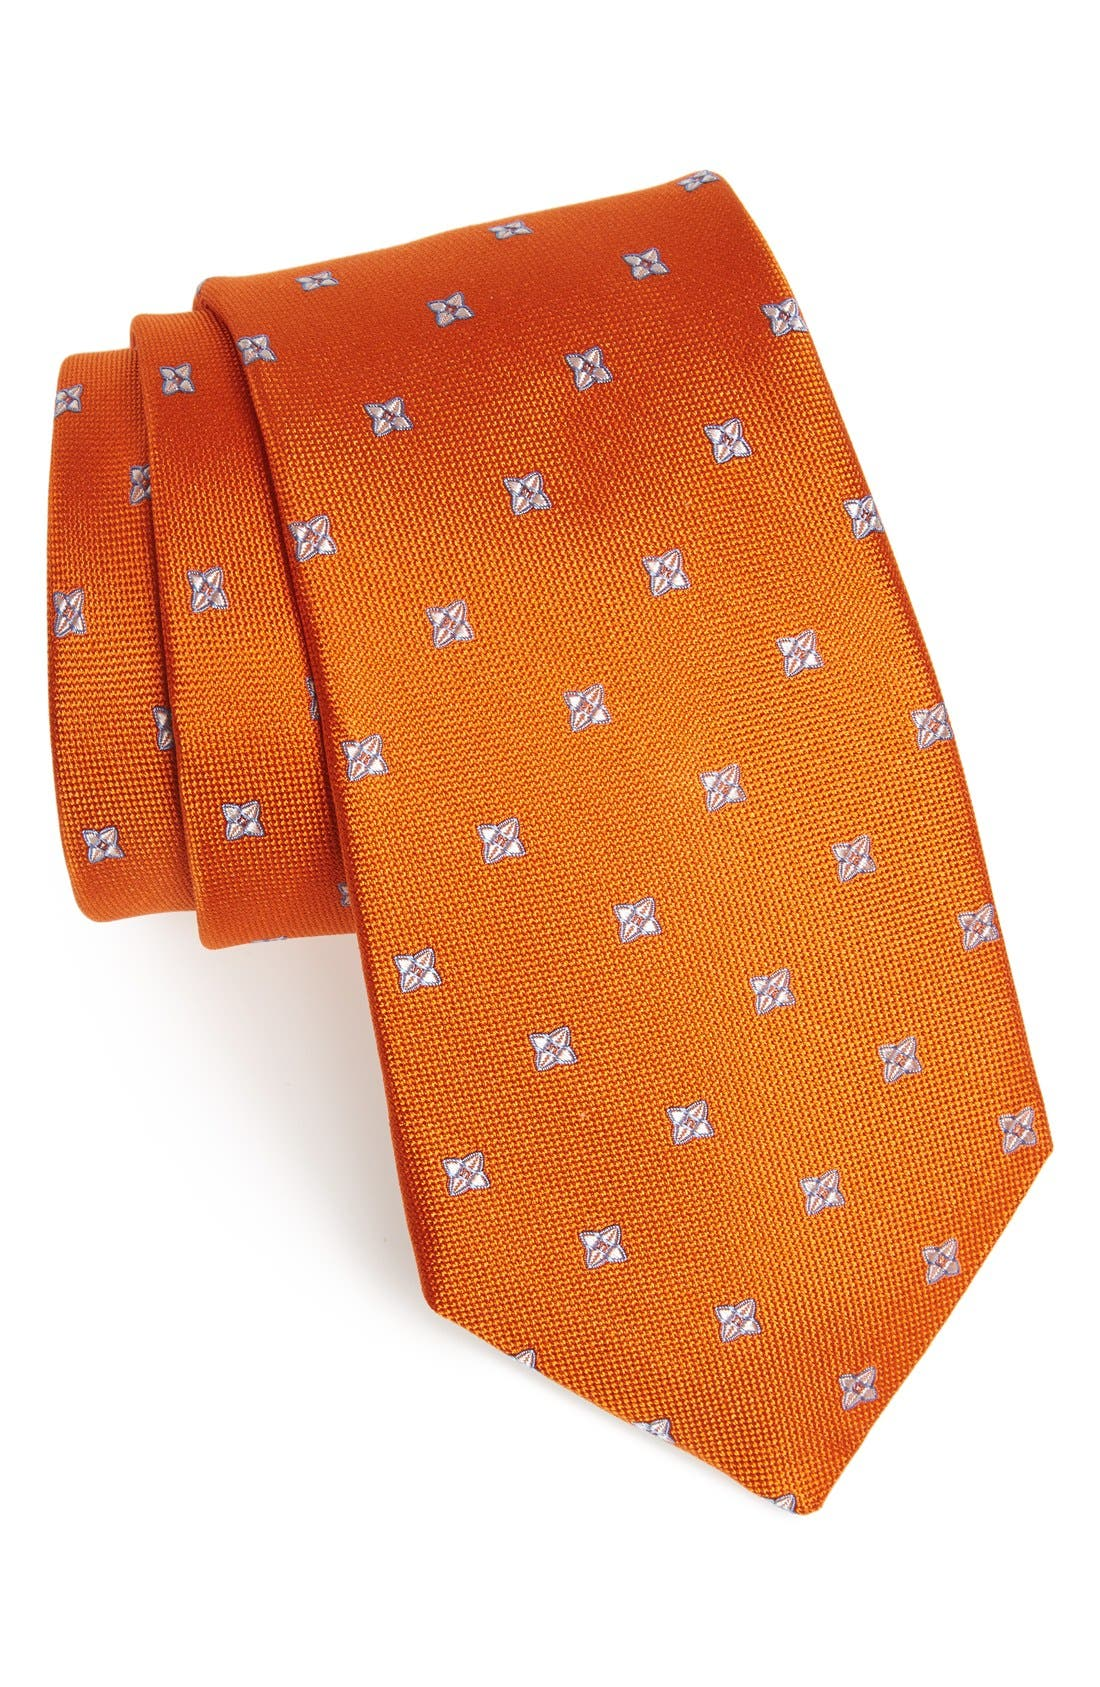 Alternate Image 1 Selected - Nordstrom 'Taylor Nest' Silk Tie